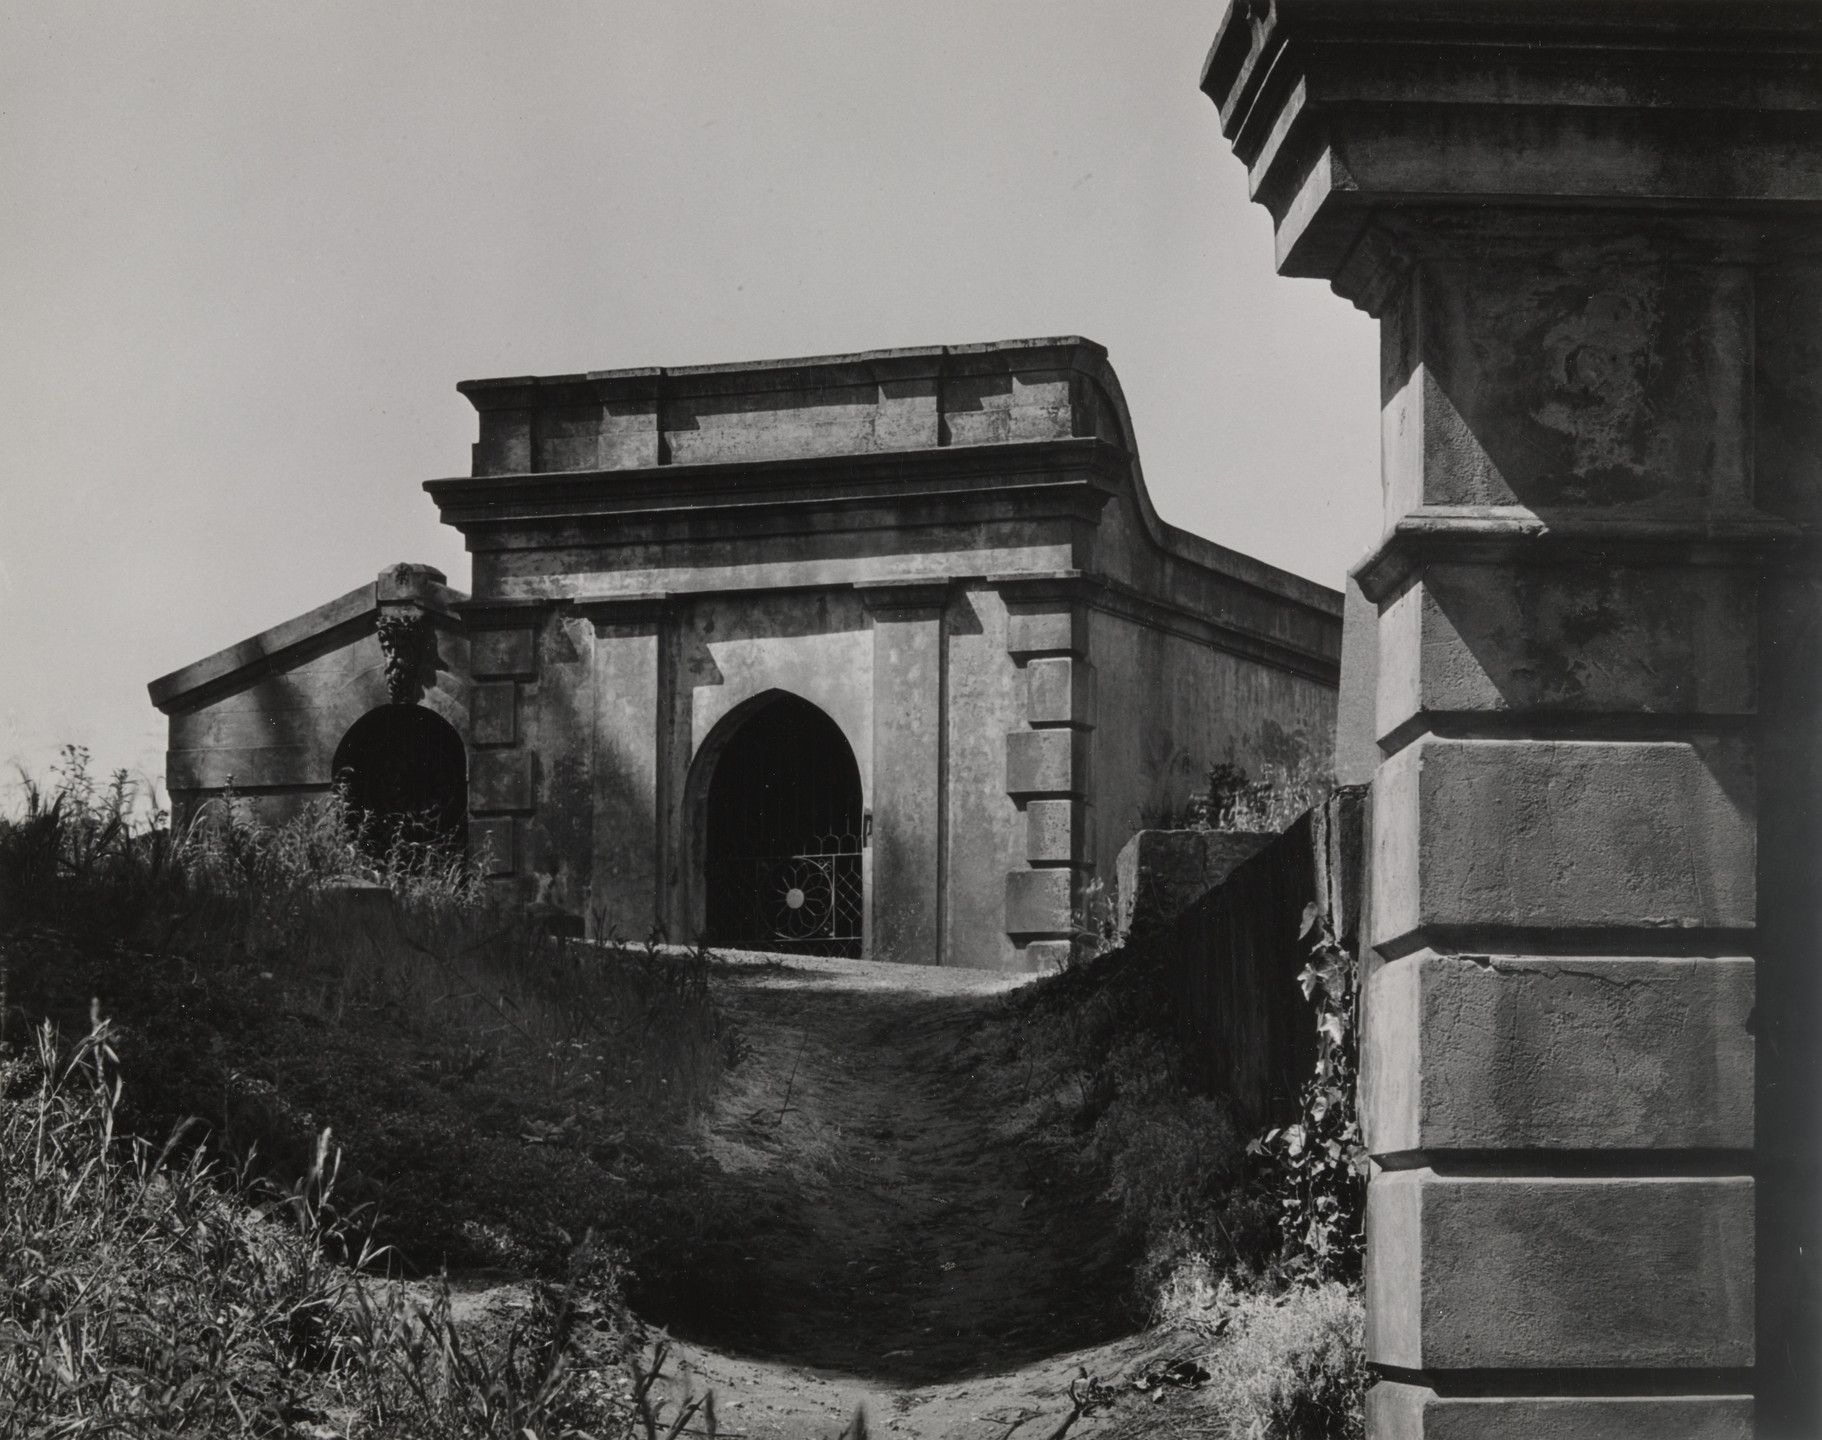 Ansel Adams. Architecture, Early California Cemetery, San Francisco. 1934